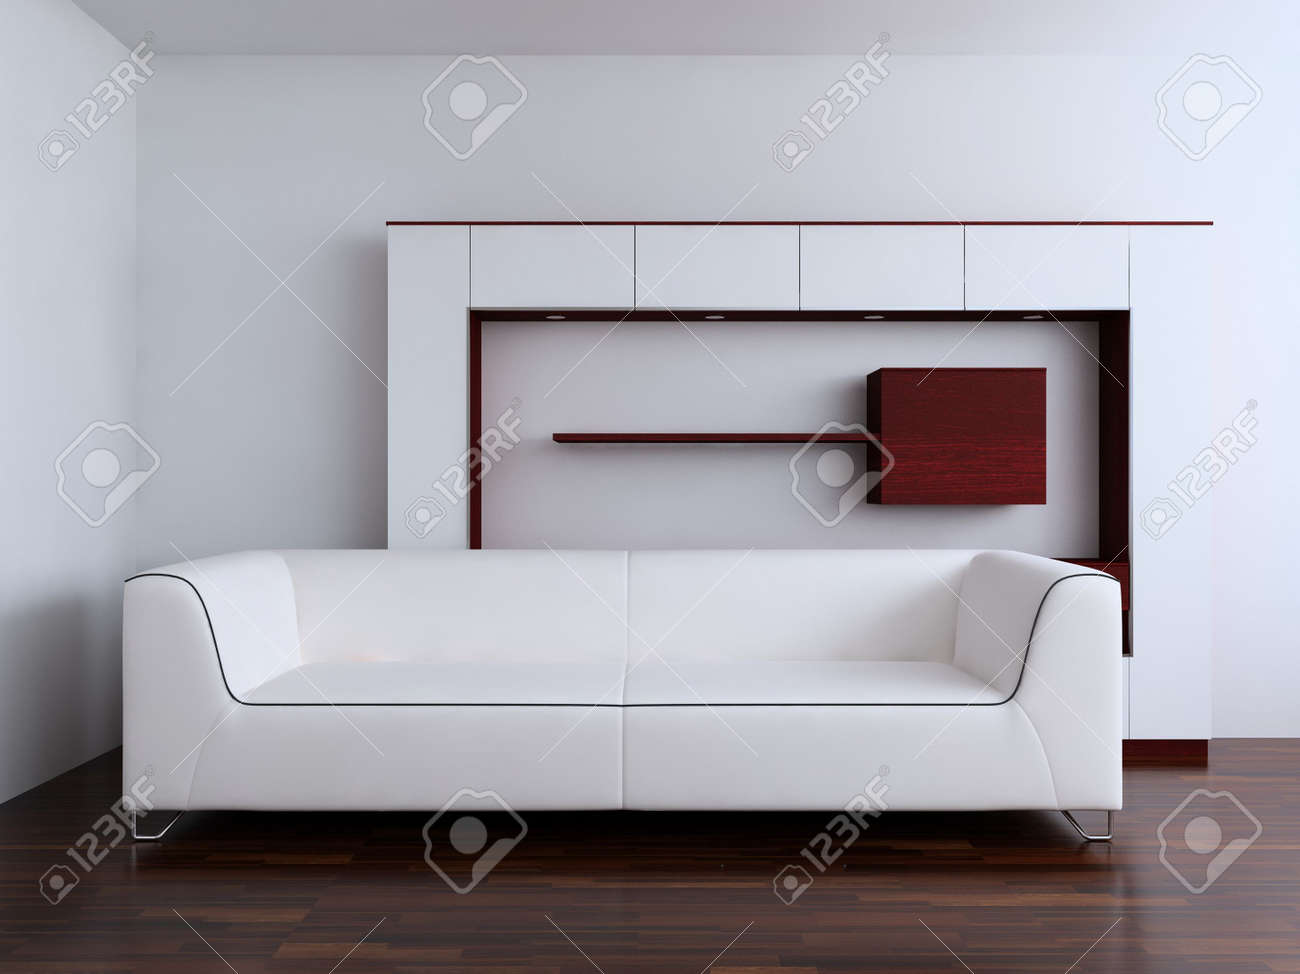 Living Room Setting Simple Living Room Setting Couch And Rack Stock Photo Picture